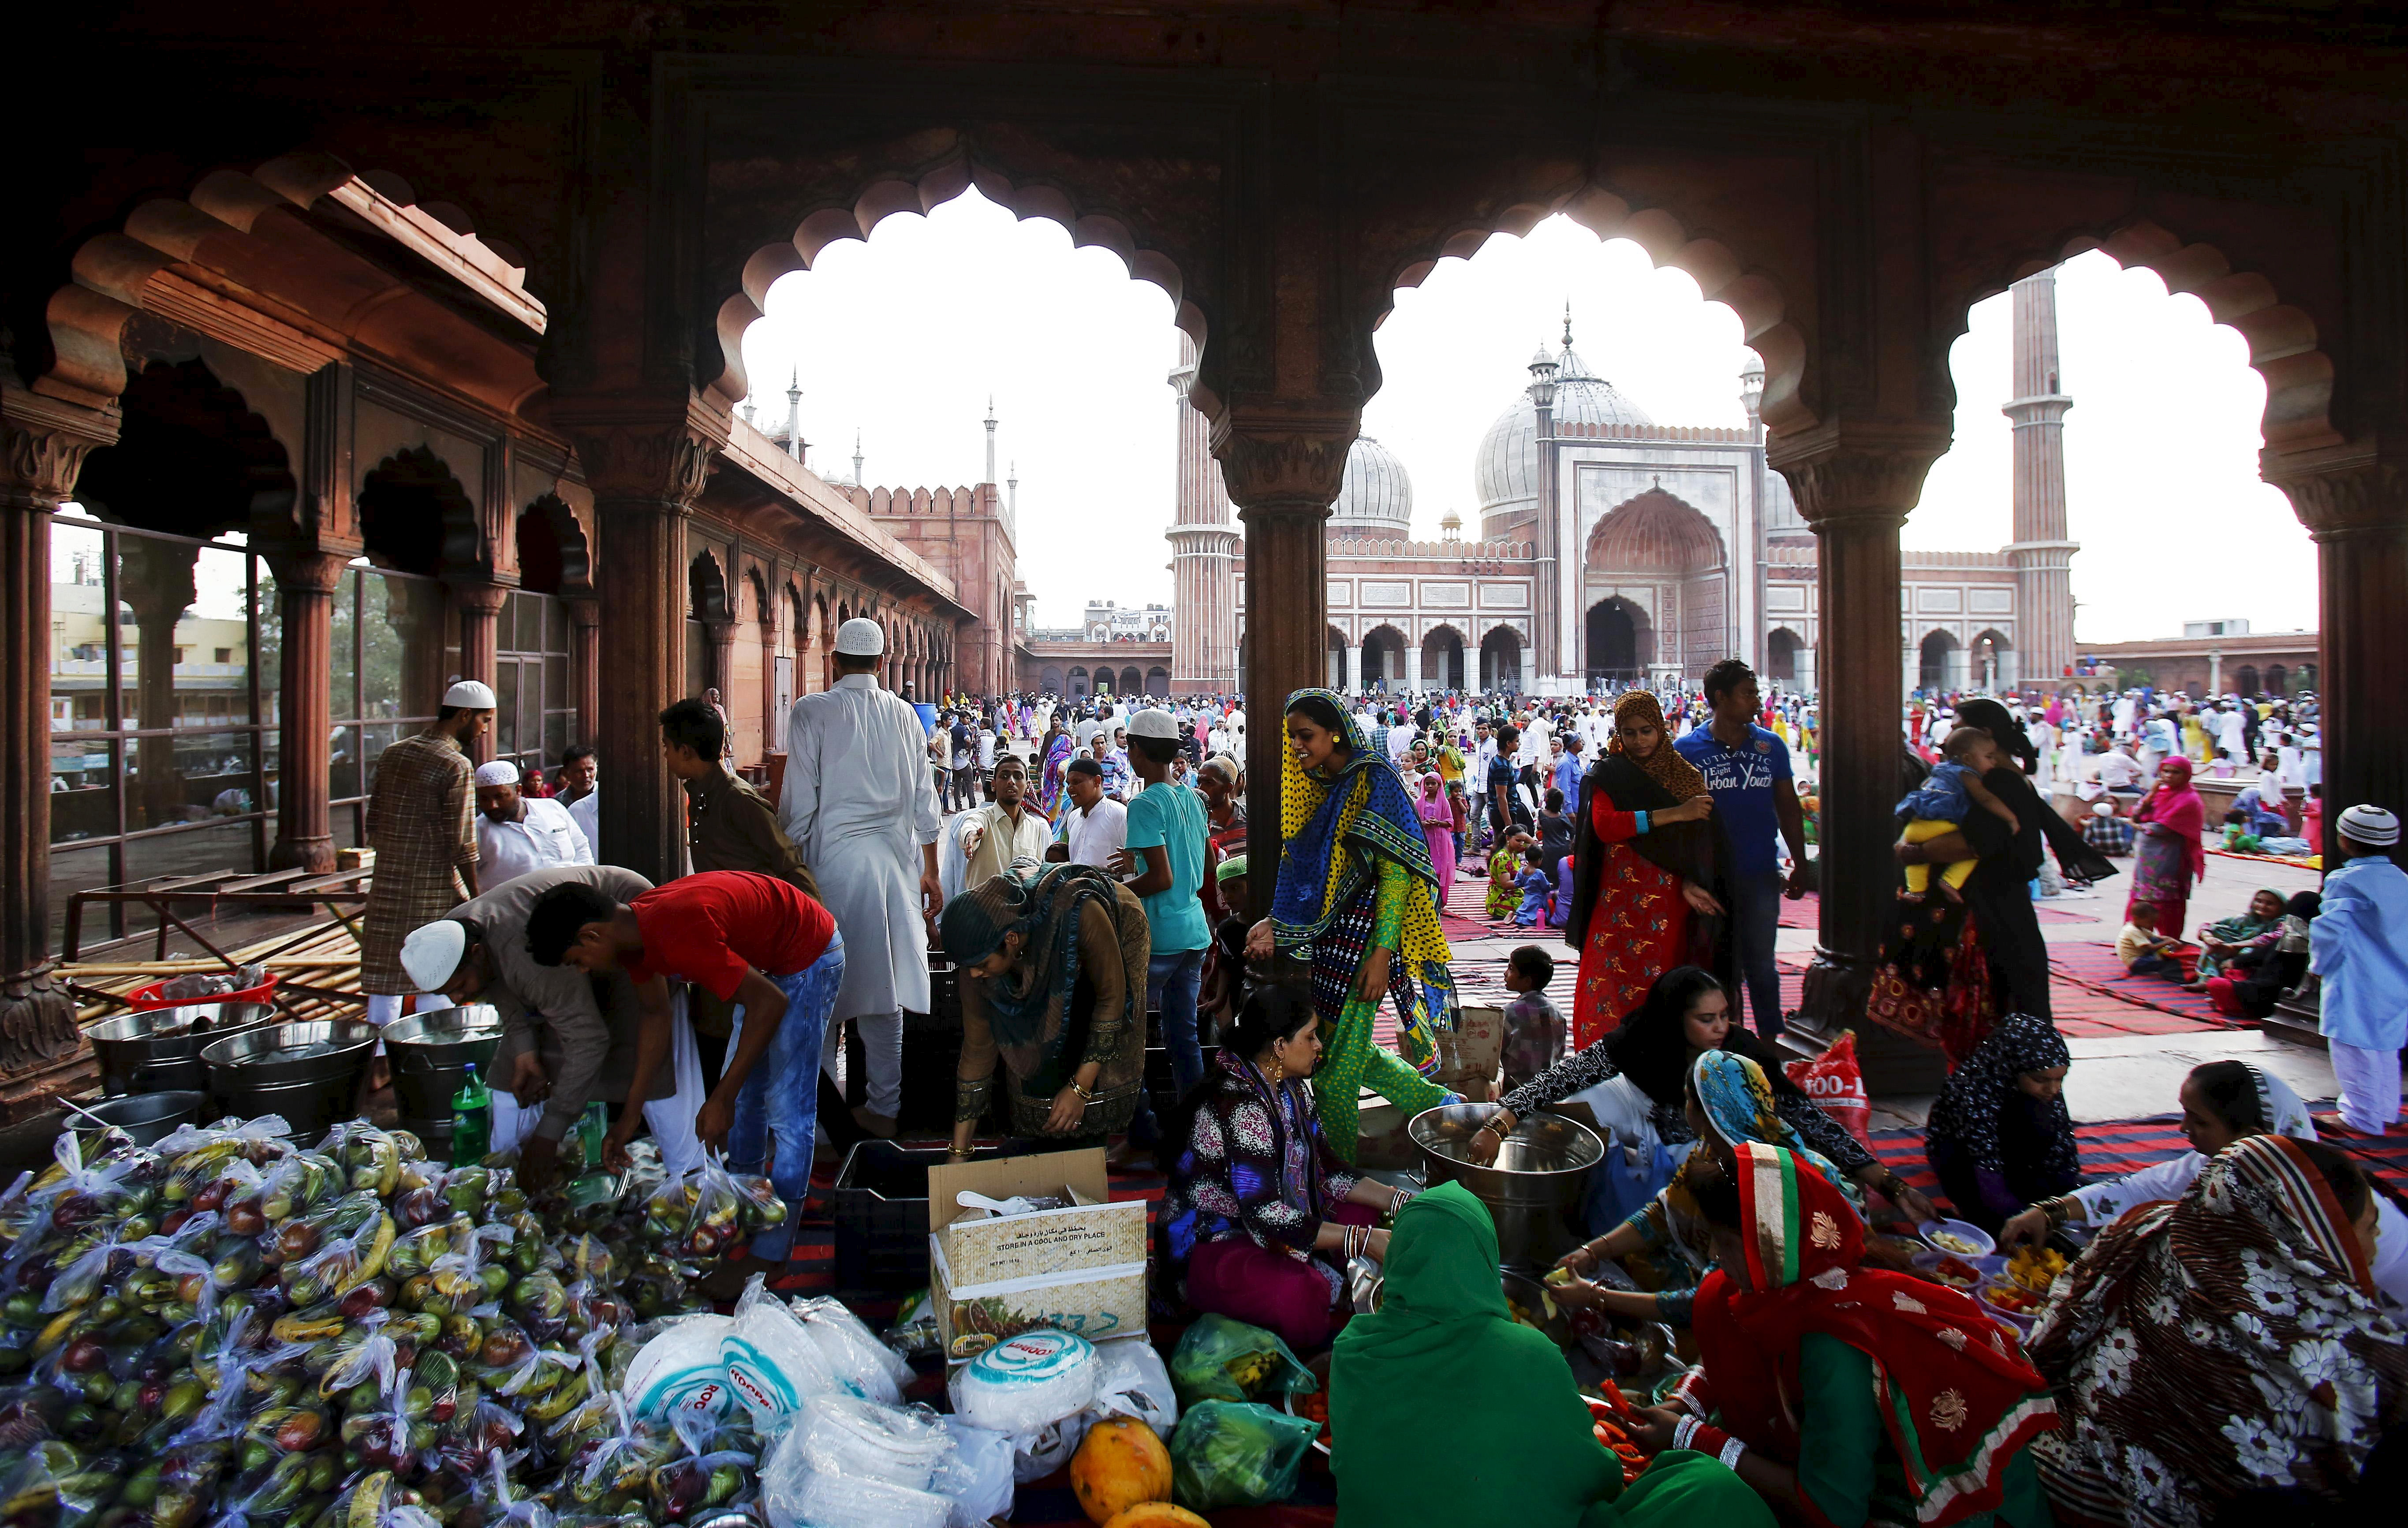 Muslims prepare to distribute free Iftar (breaking of fast) meals as part of charity activities during the holy month of Ramadan at the Jama Masjid (Grand Mosque) in the old quarters of Delhi, India, July 2, 2015. Photo by Anindito Mukherjee/Reuters